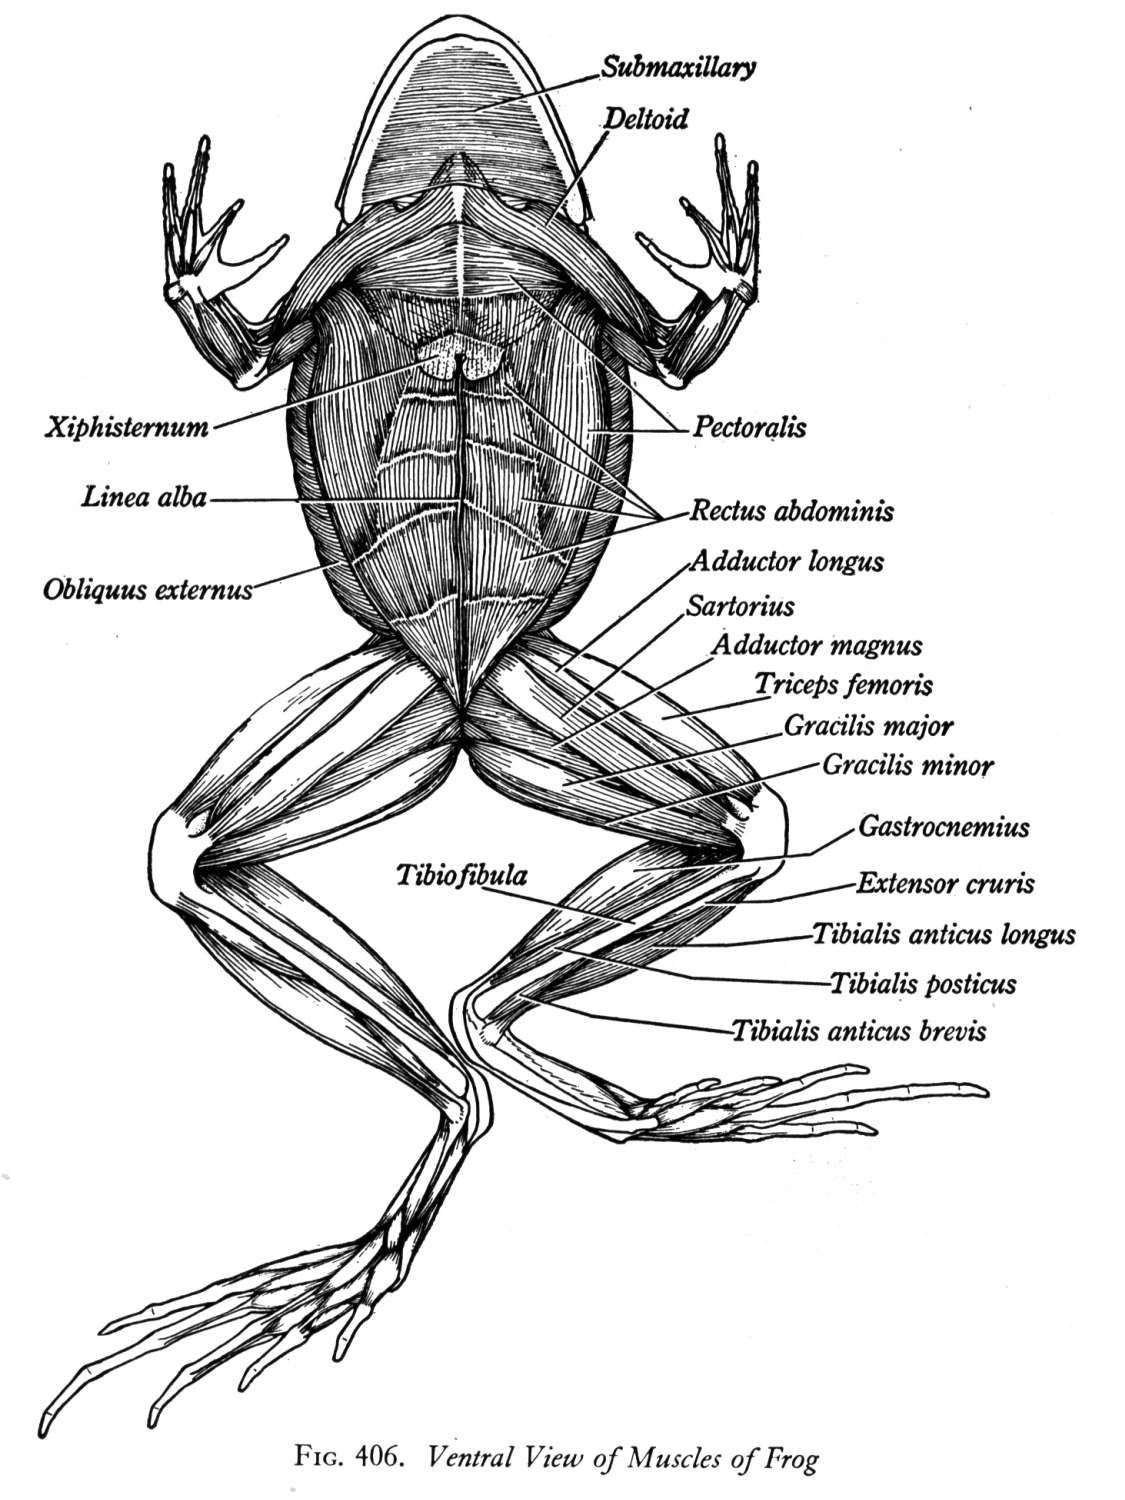 Frog Muscle Anatomy Biology 2 1g 11251500 Dryad Pinterest